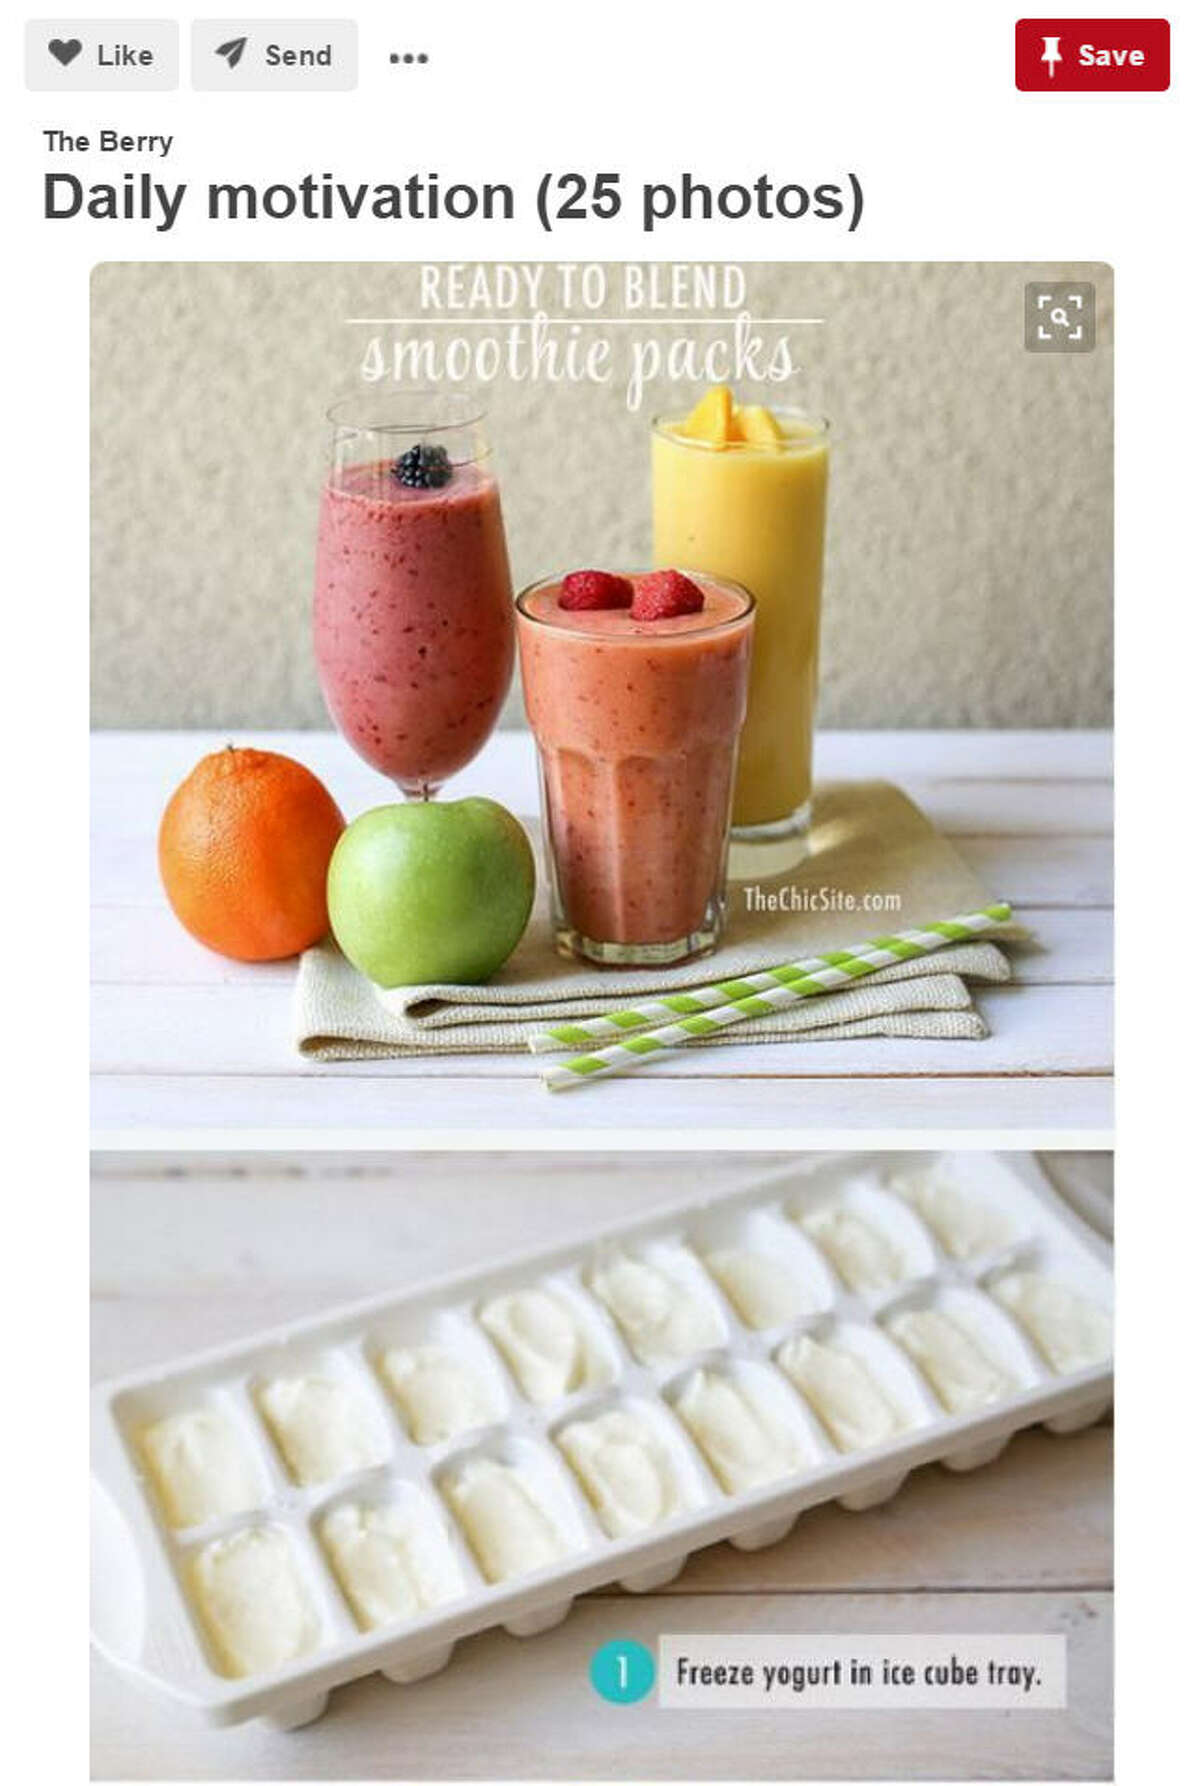 Life Hack: Freeze yogurt for great breakfast smoothie meals. Breakfast can get boring with the same old bowl of cereal and milk or eggs and toast. Mix it up with a delicious Smoothie recipe. Source: Pinterest/Daily Motivation